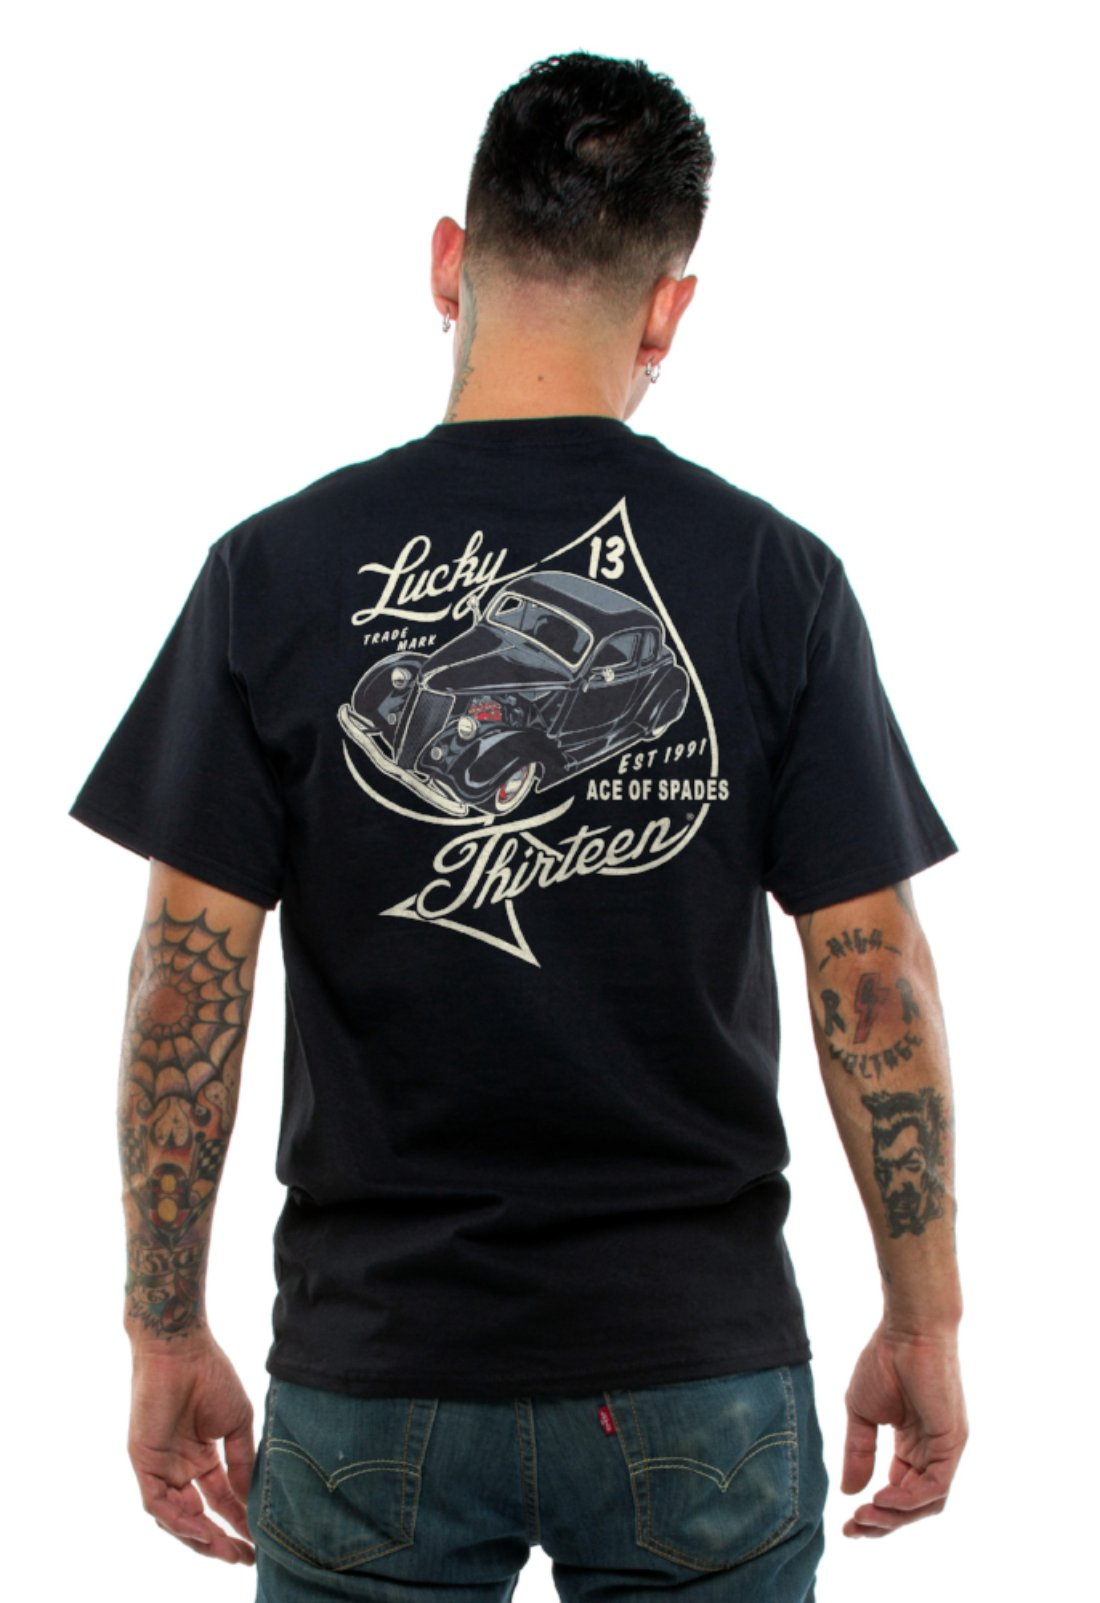 The ACE OF SPADES Tee